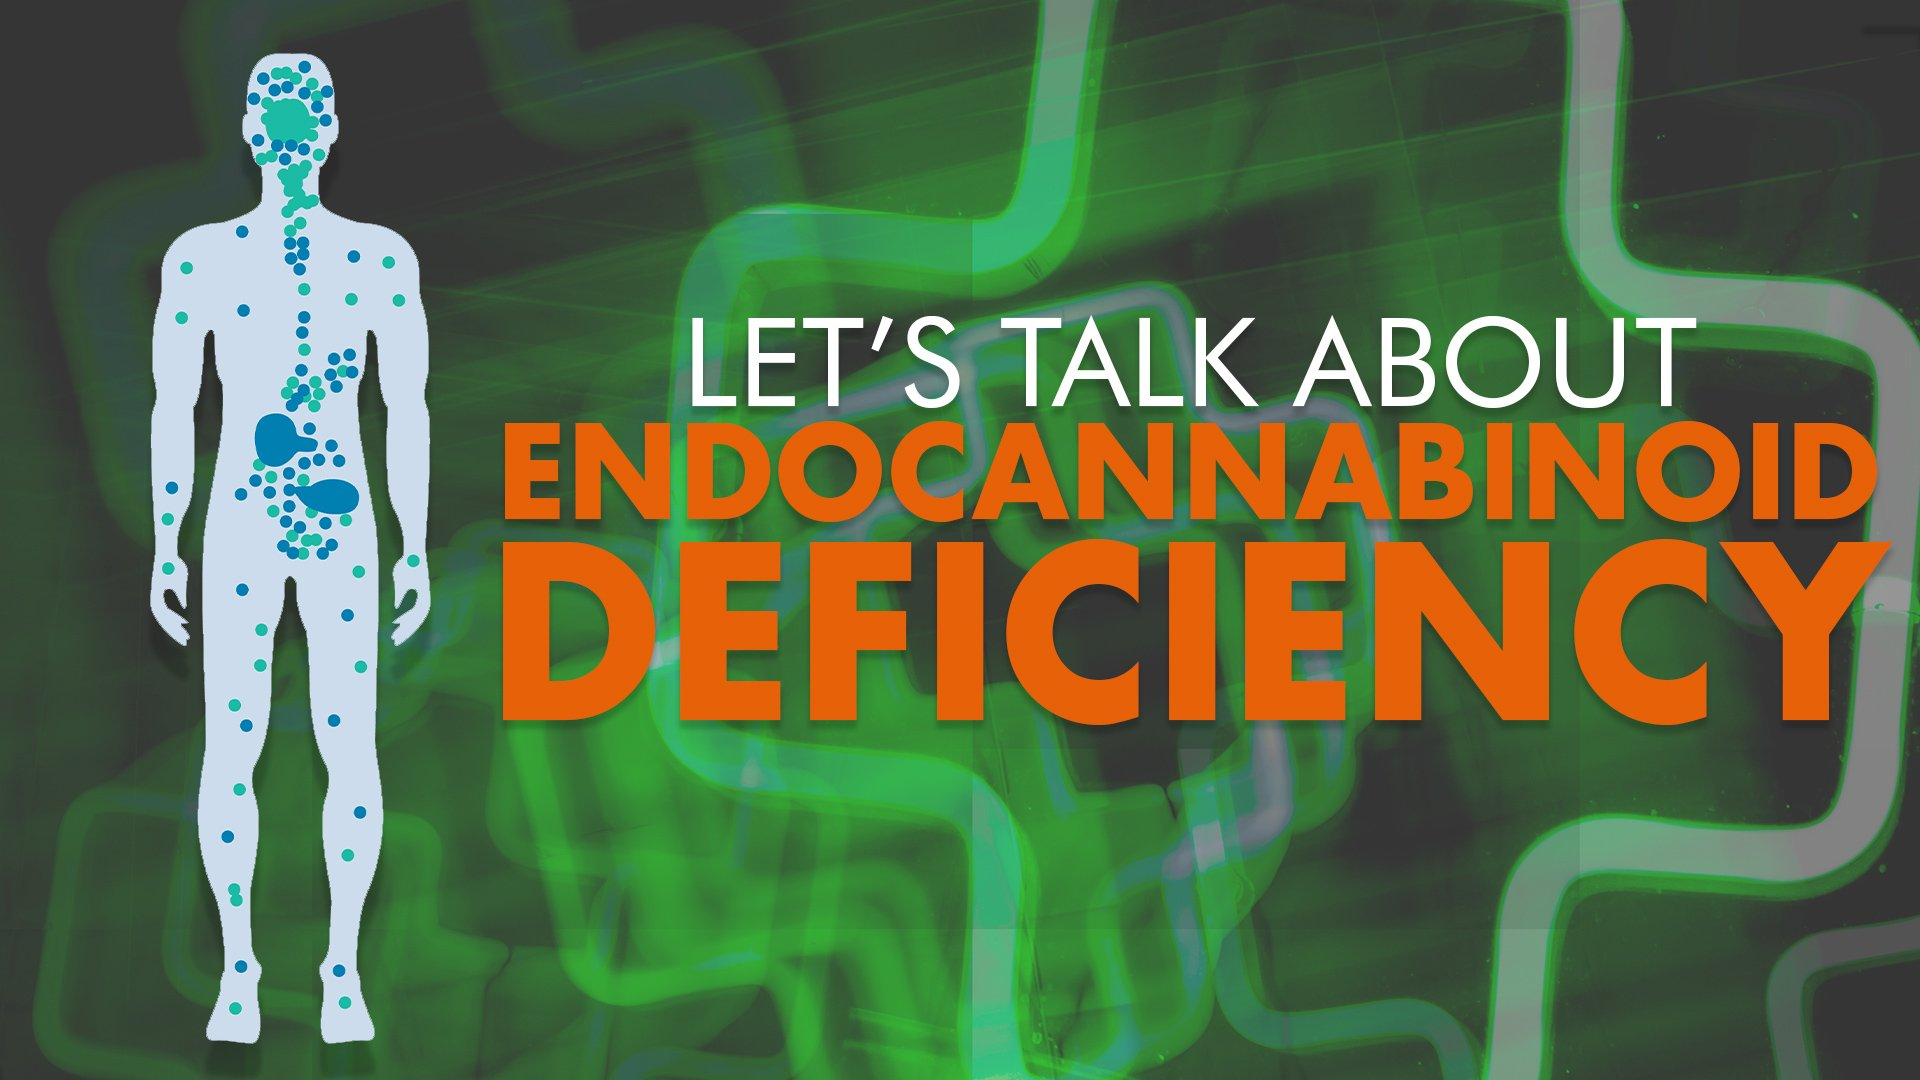 Endocannabinoid Deficiency